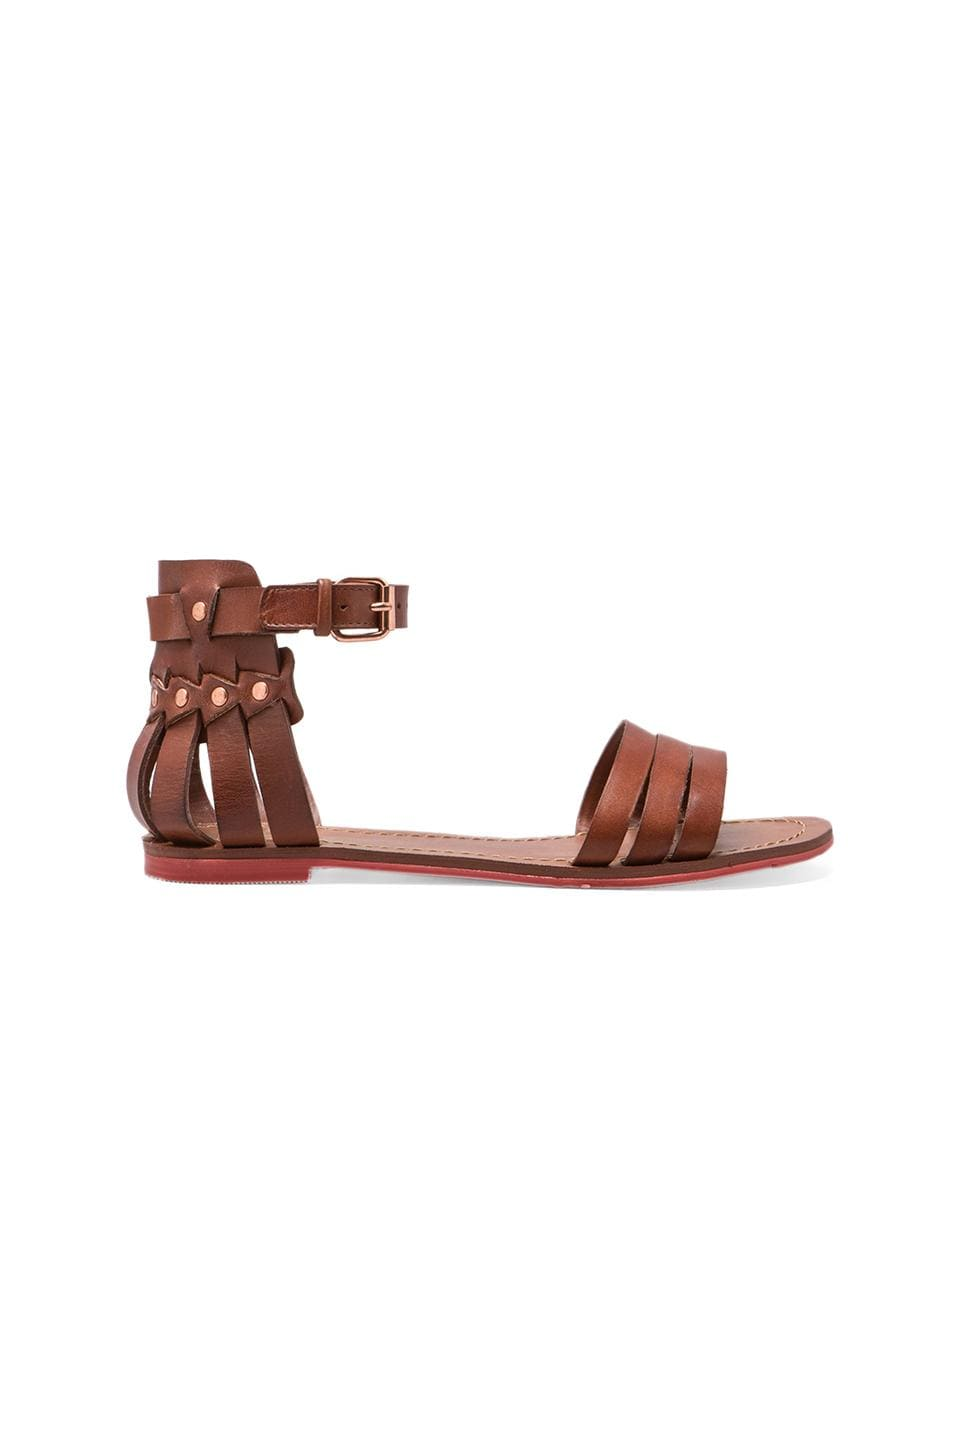 Dolce Vita Daffodil Sandal in Brown